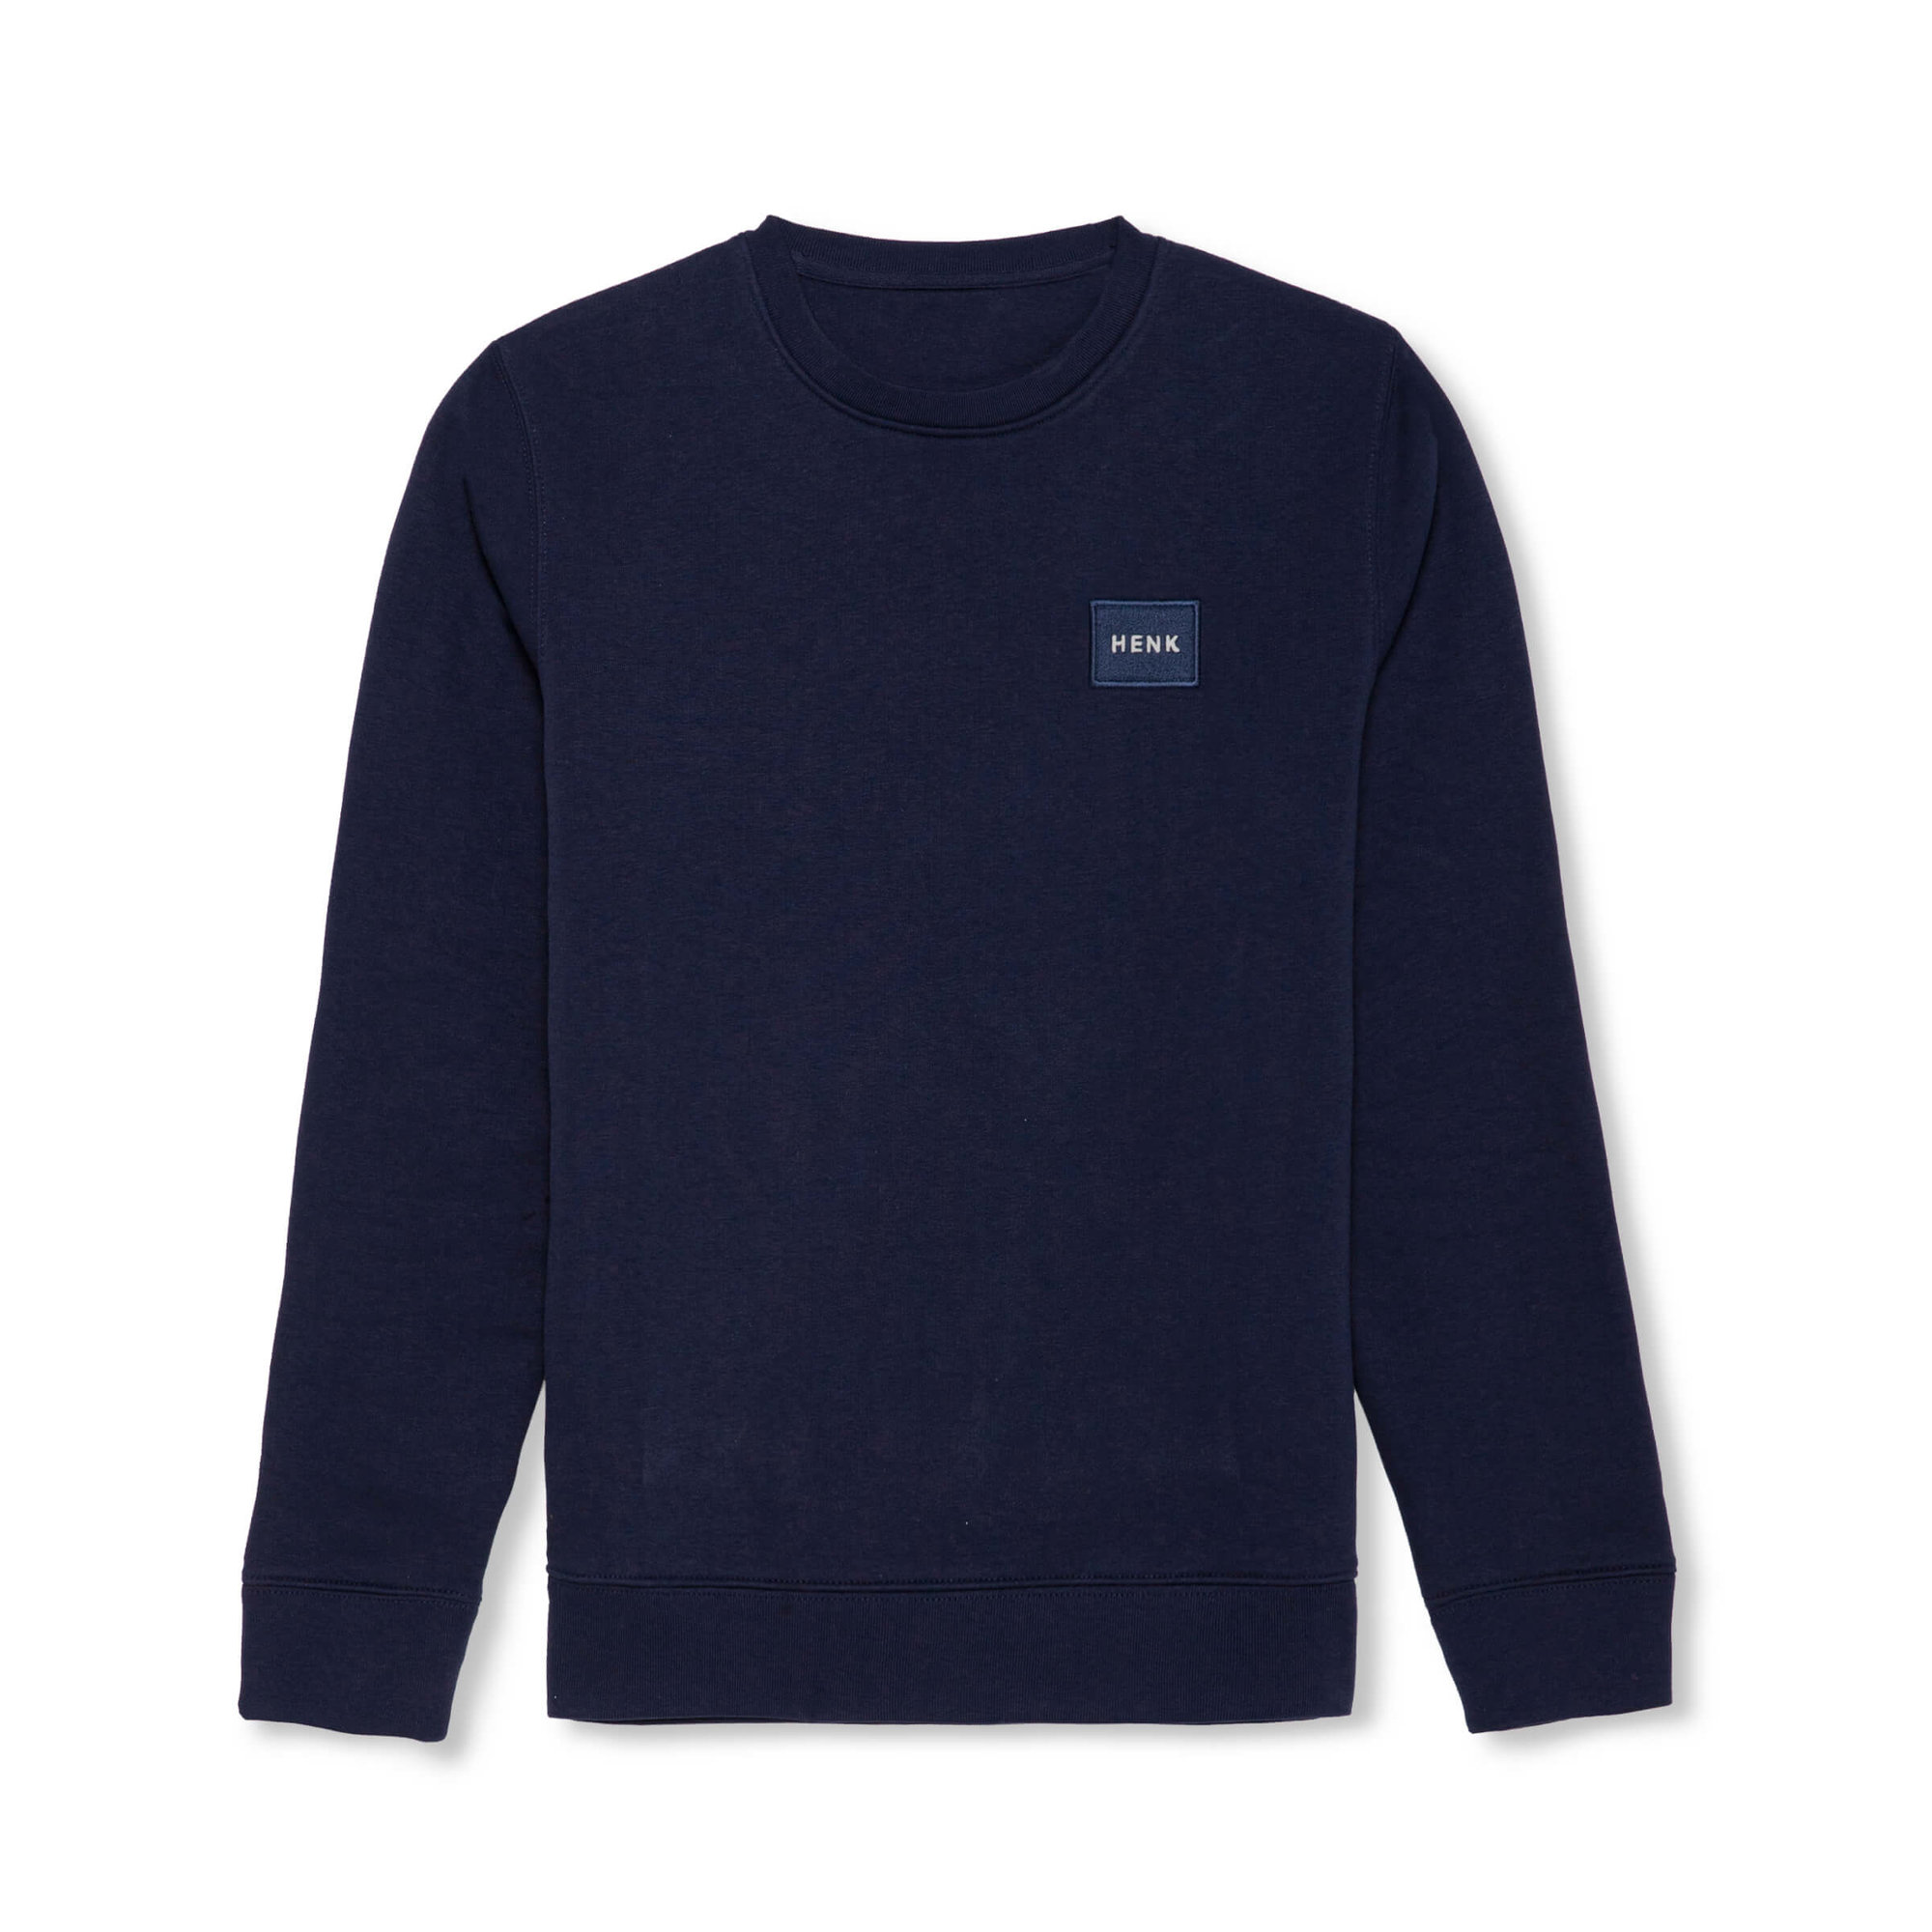 Sweater | Navy | Studio HENK | Setting6